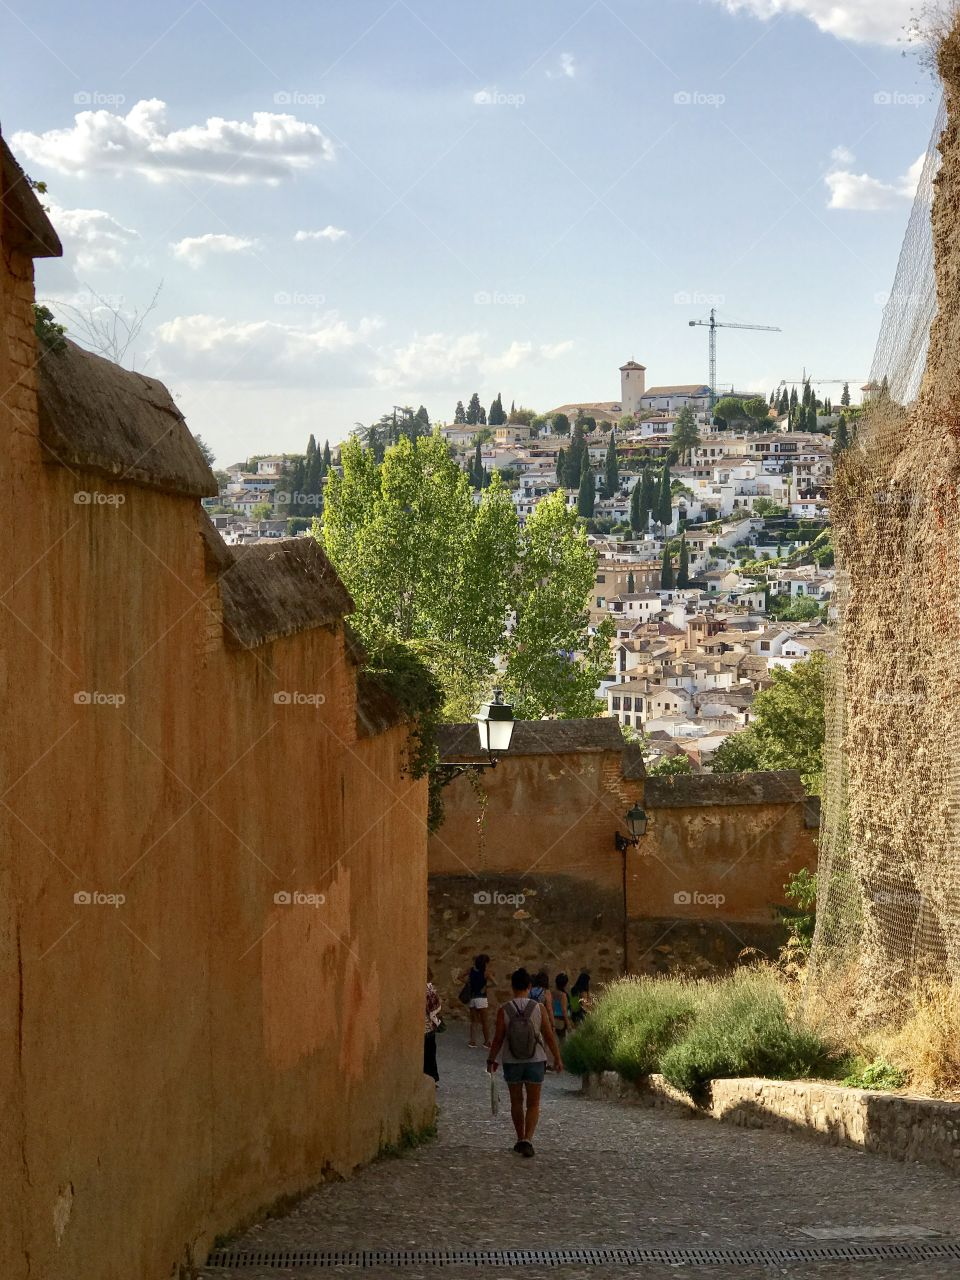 On the path down the hill, from the Palace at Alhambra, overlooks the old town of Granada, the stuff fairytales are made of, still lives here! 🧚🏼♀️